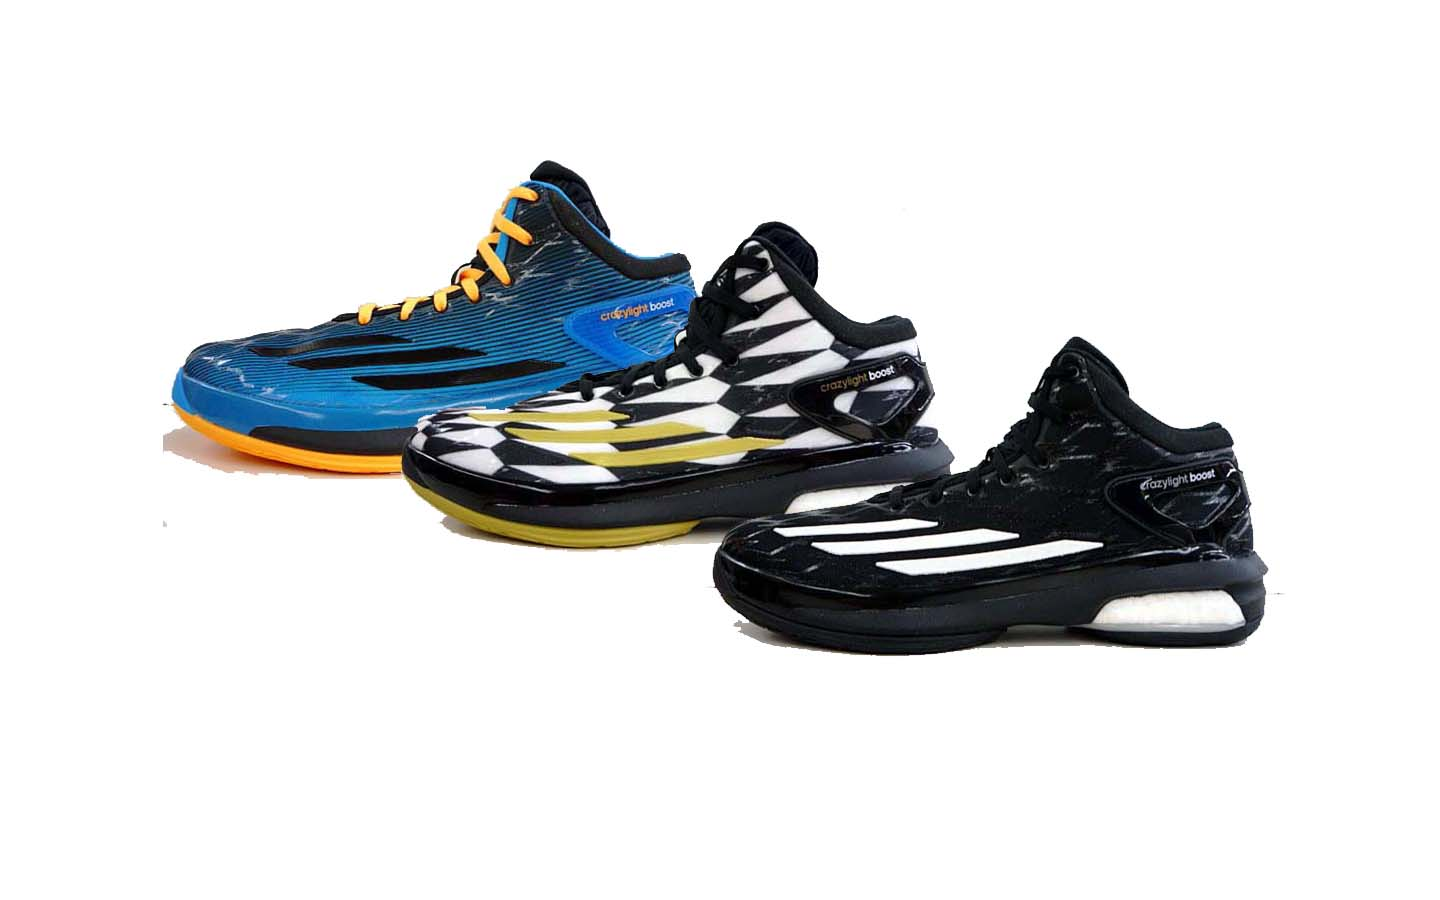 adidas Crazylight Boost - Upcoming Colorways